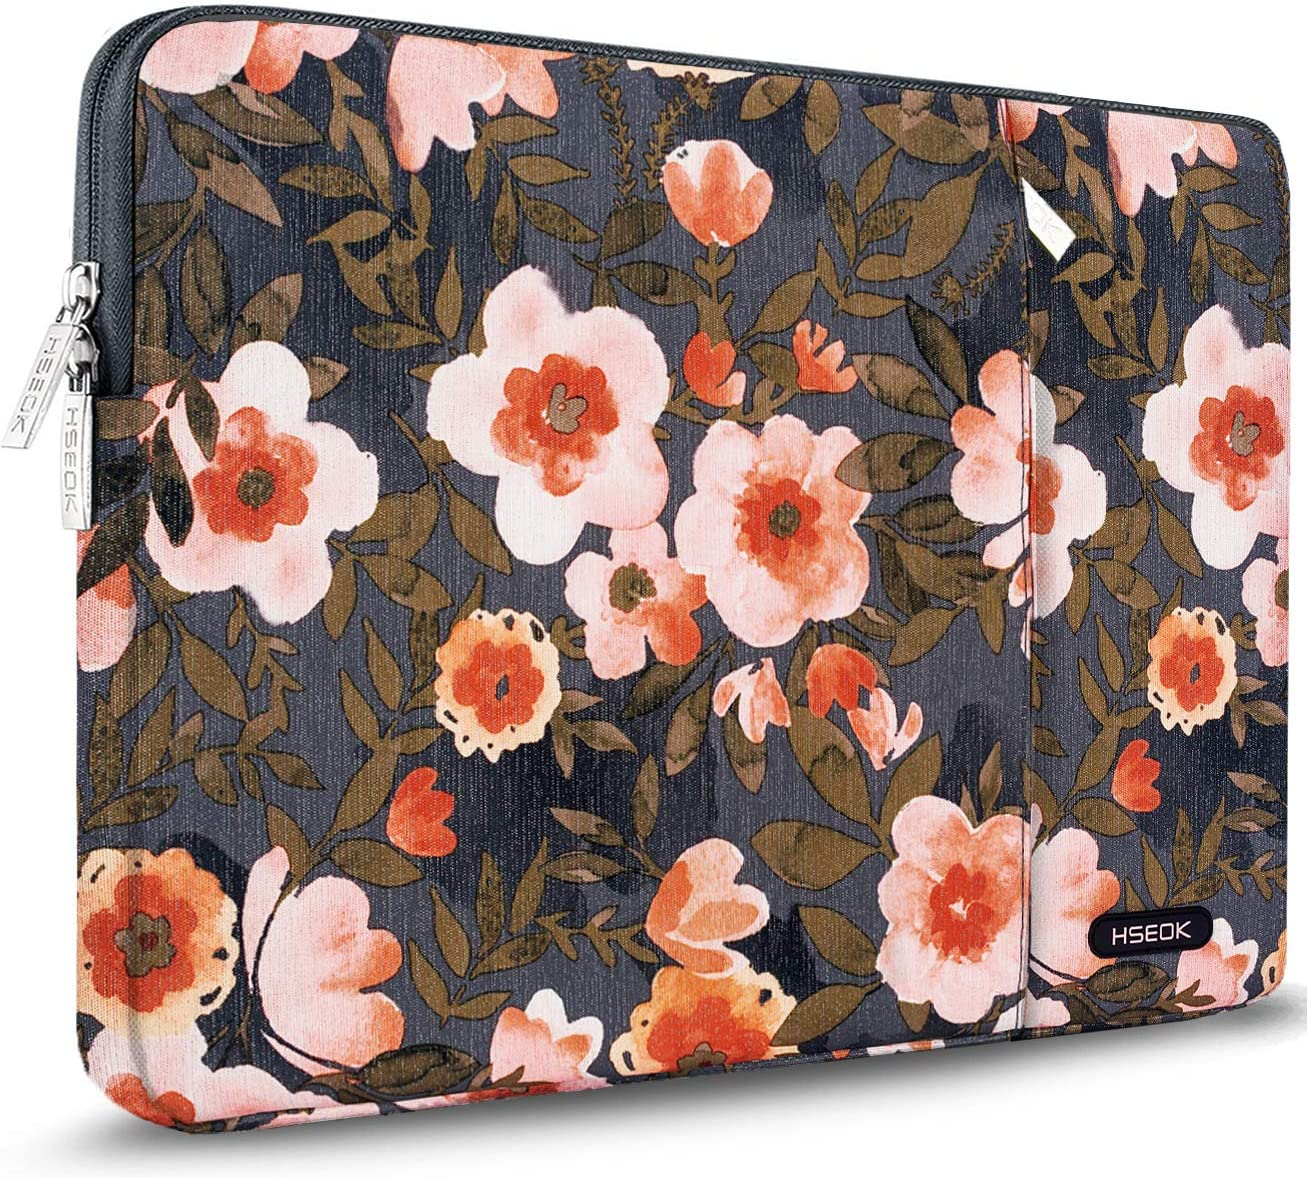 "HSEOK Golden Flower Laptop Sleeve 15-15.6 Inch Case for Most 15.6"" MacBook Notebooks, Spill and Drop Resistant Carrying Case for HP Lenovo ASUS DELL Toshiba"